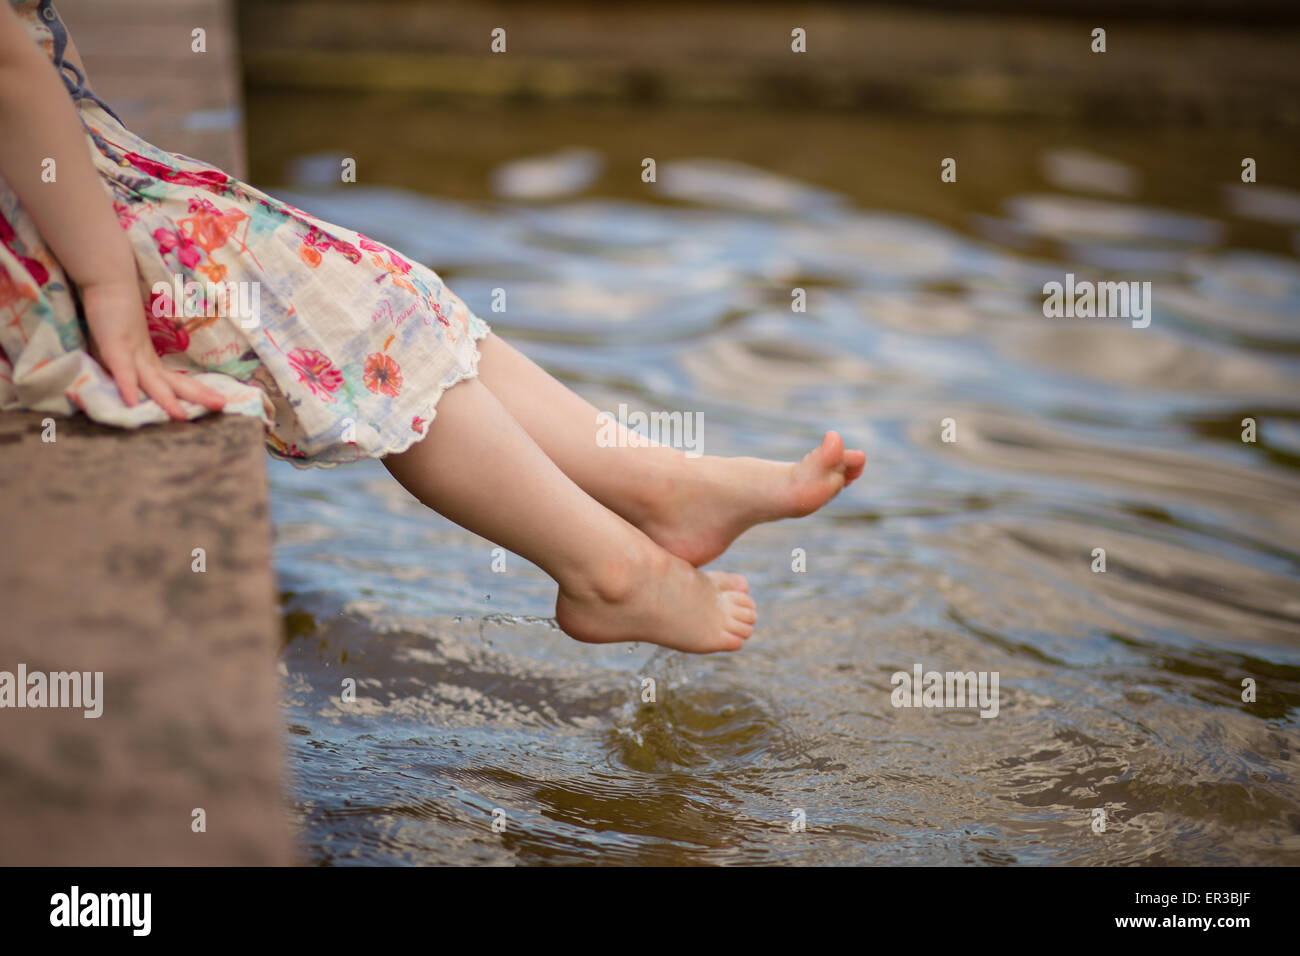 Girl dipping her feet in water - Stock Image